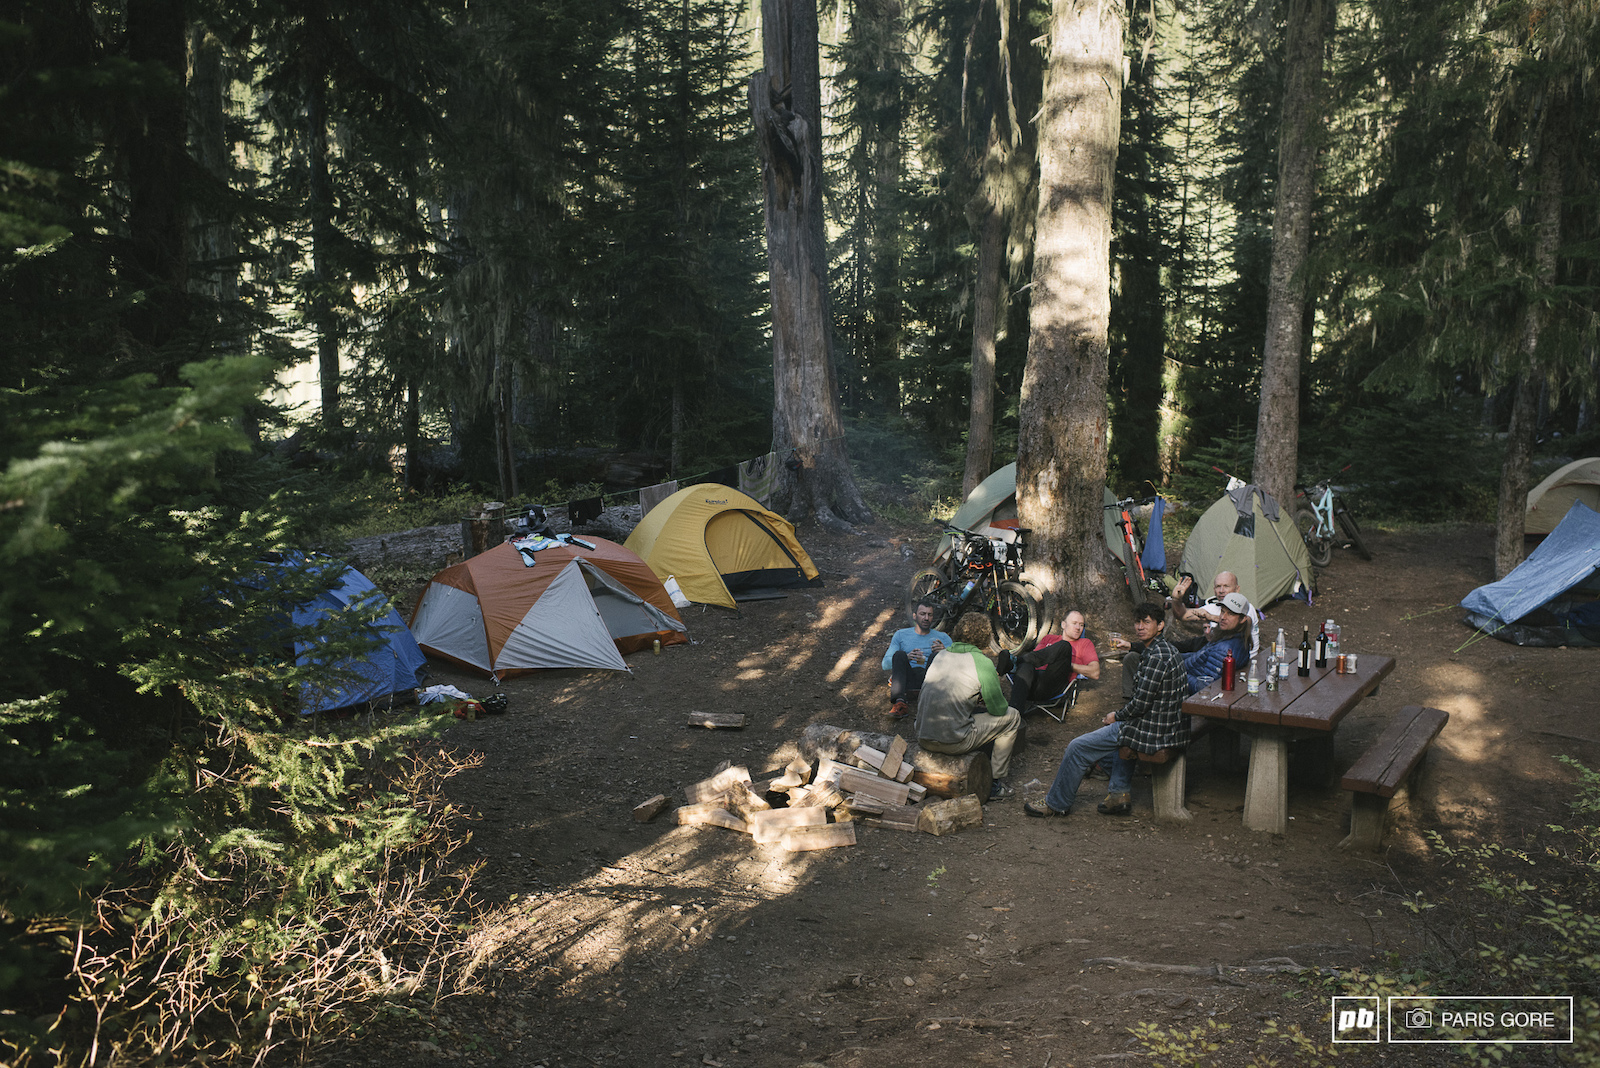 Image from the Trans-Cascadia Enduro by Paris Gore.